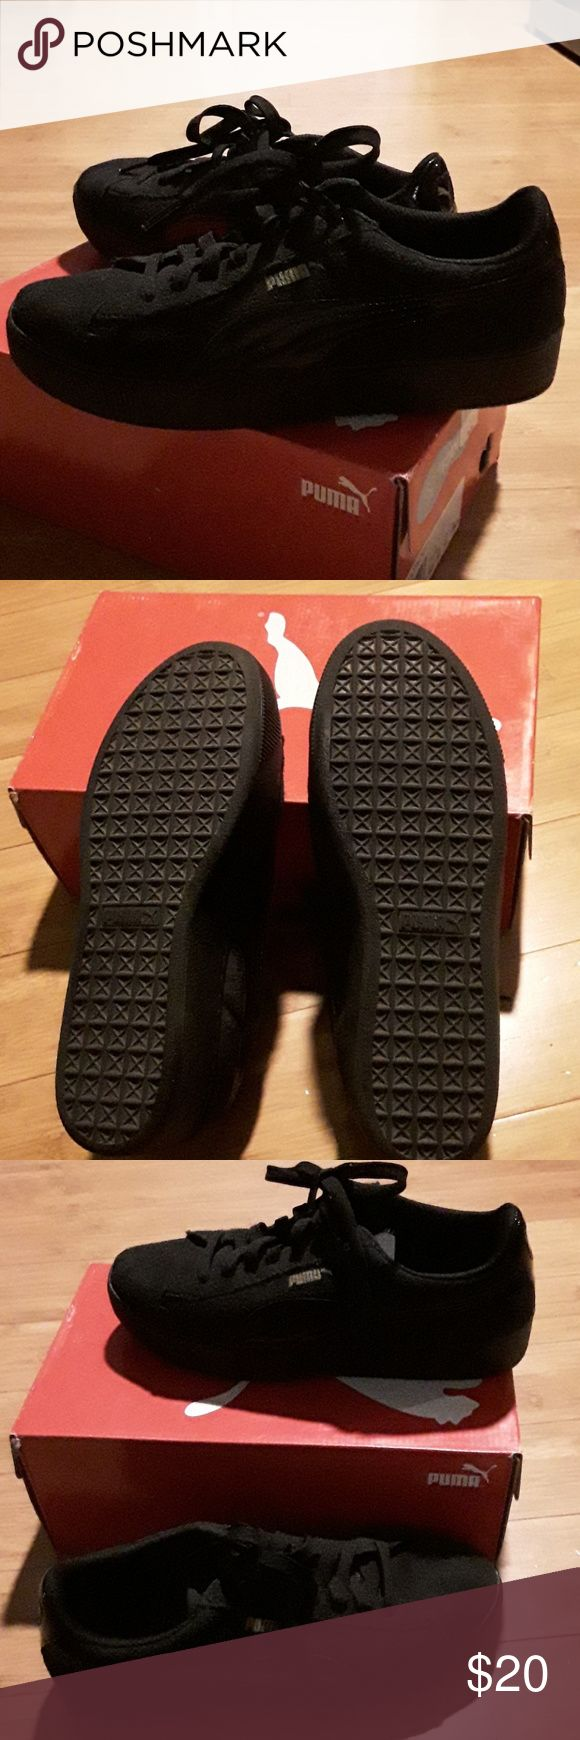 Puma Vikky Platform Puma black soft foam comfort inserts. Practically new. Wore once. Firm on the price. Puma Shoes Athletic Shoes